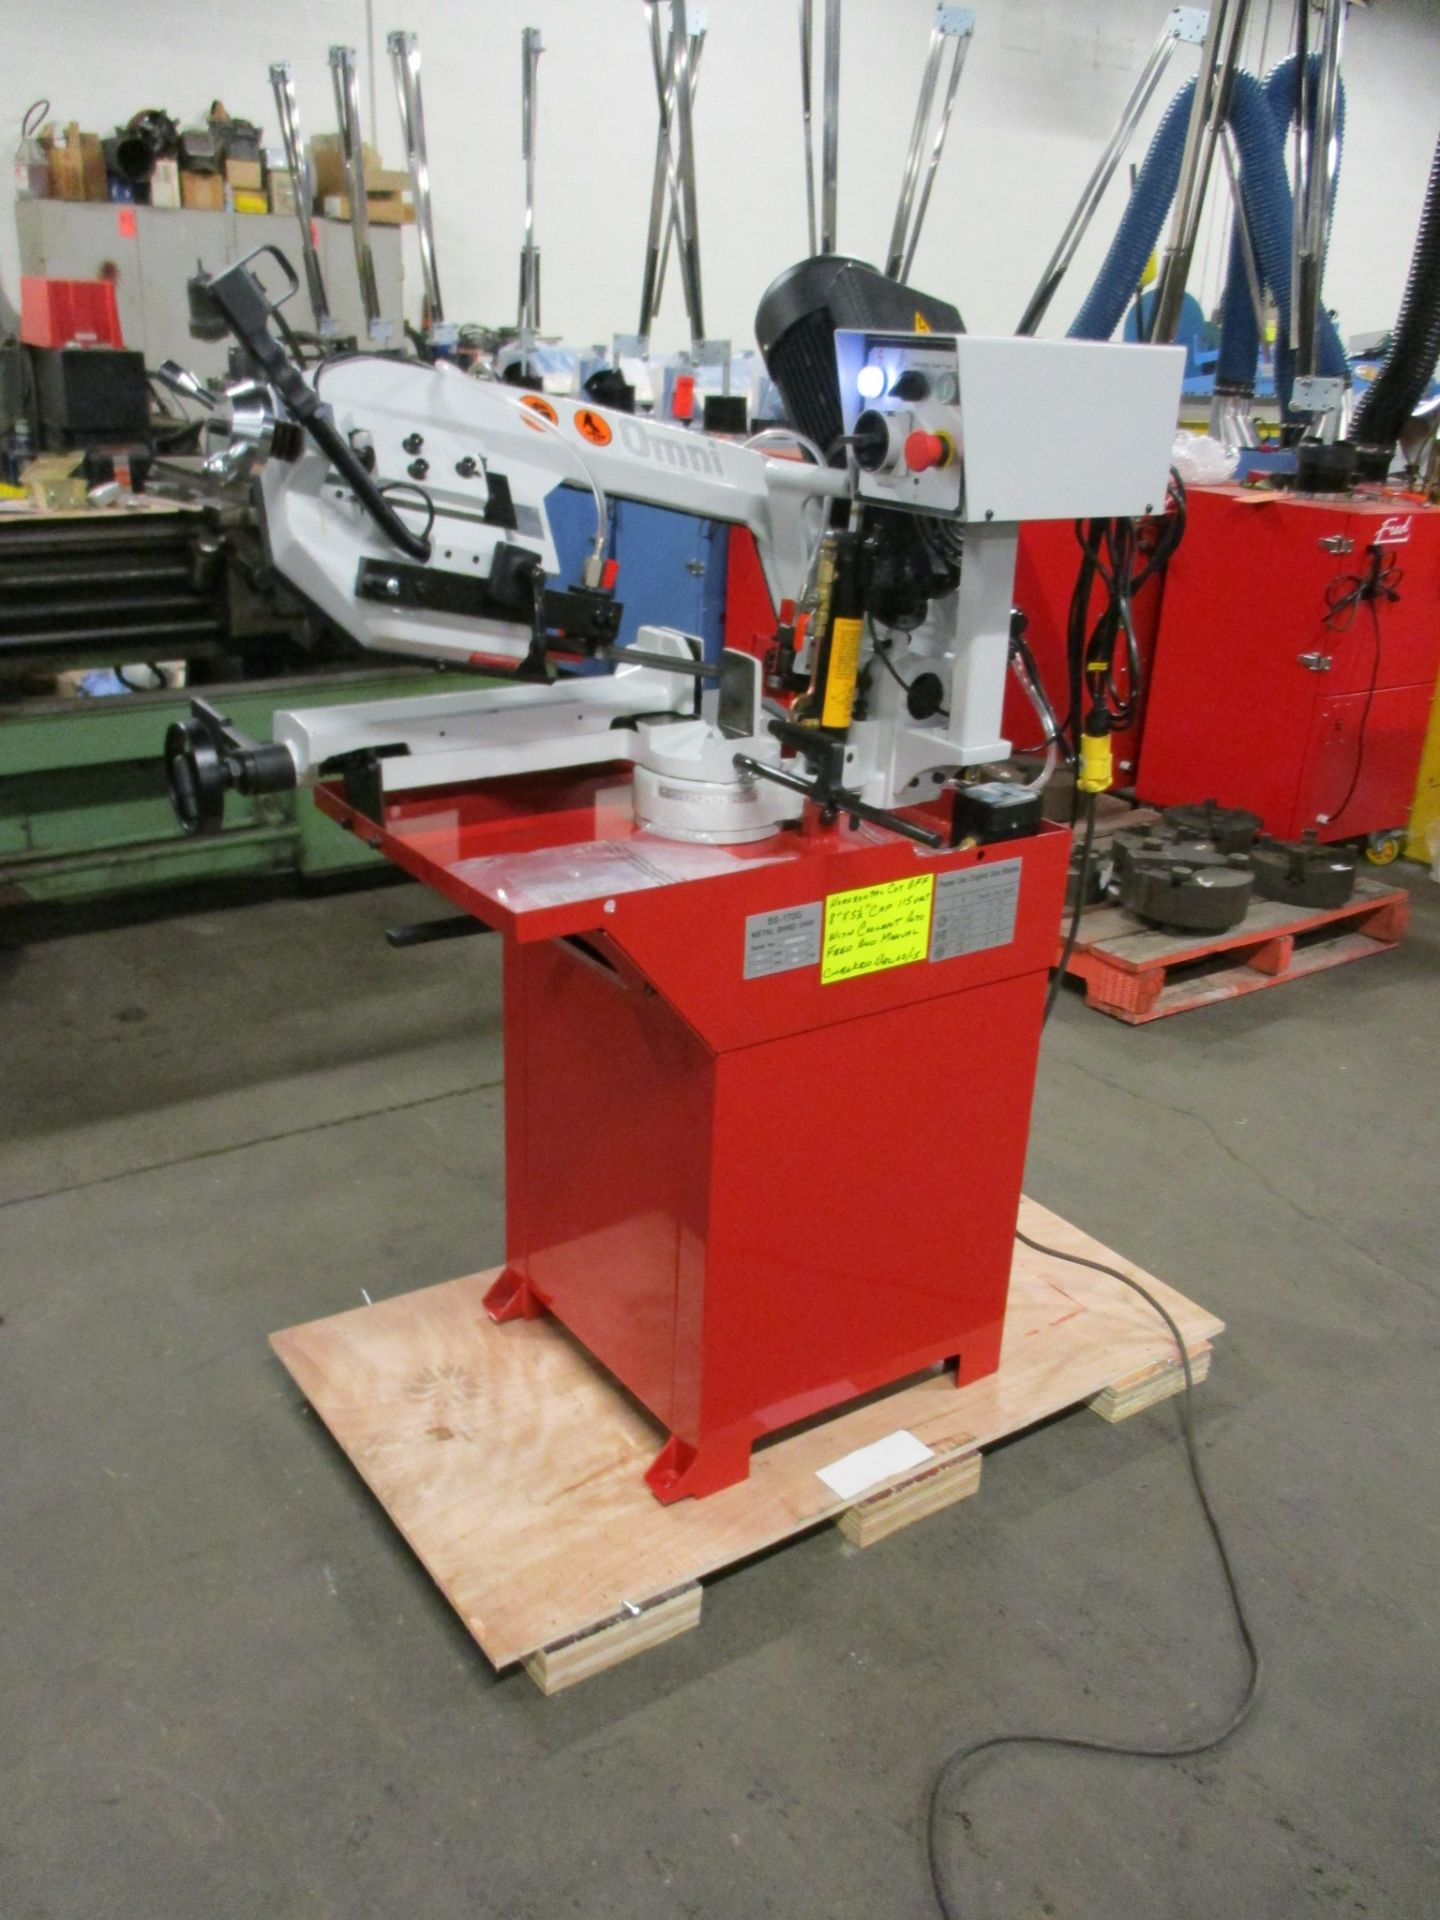 Lot 256 - Omni Horizontal Band Saw - GEAR DRIVEN MOTOR with POWER HEAD with Automatic & Manual cut - MINT &